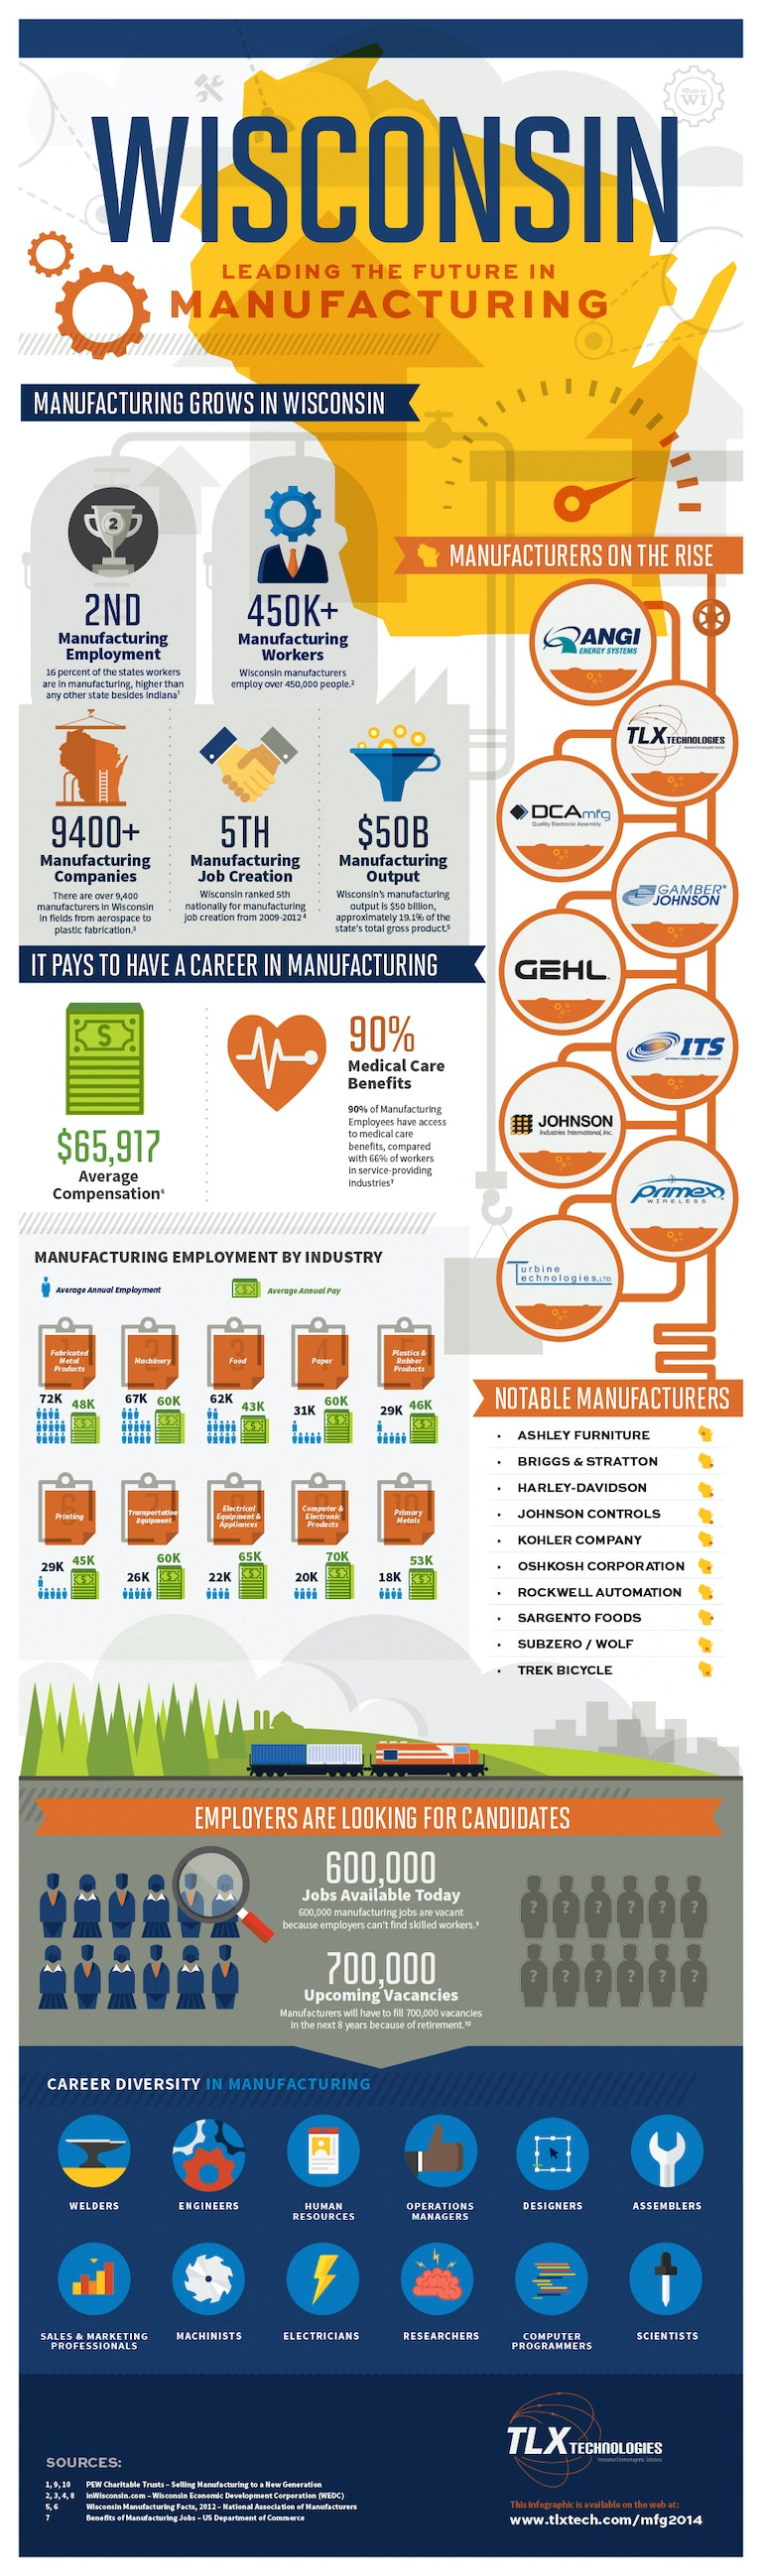 Wisconsin Manufacturing Infographic